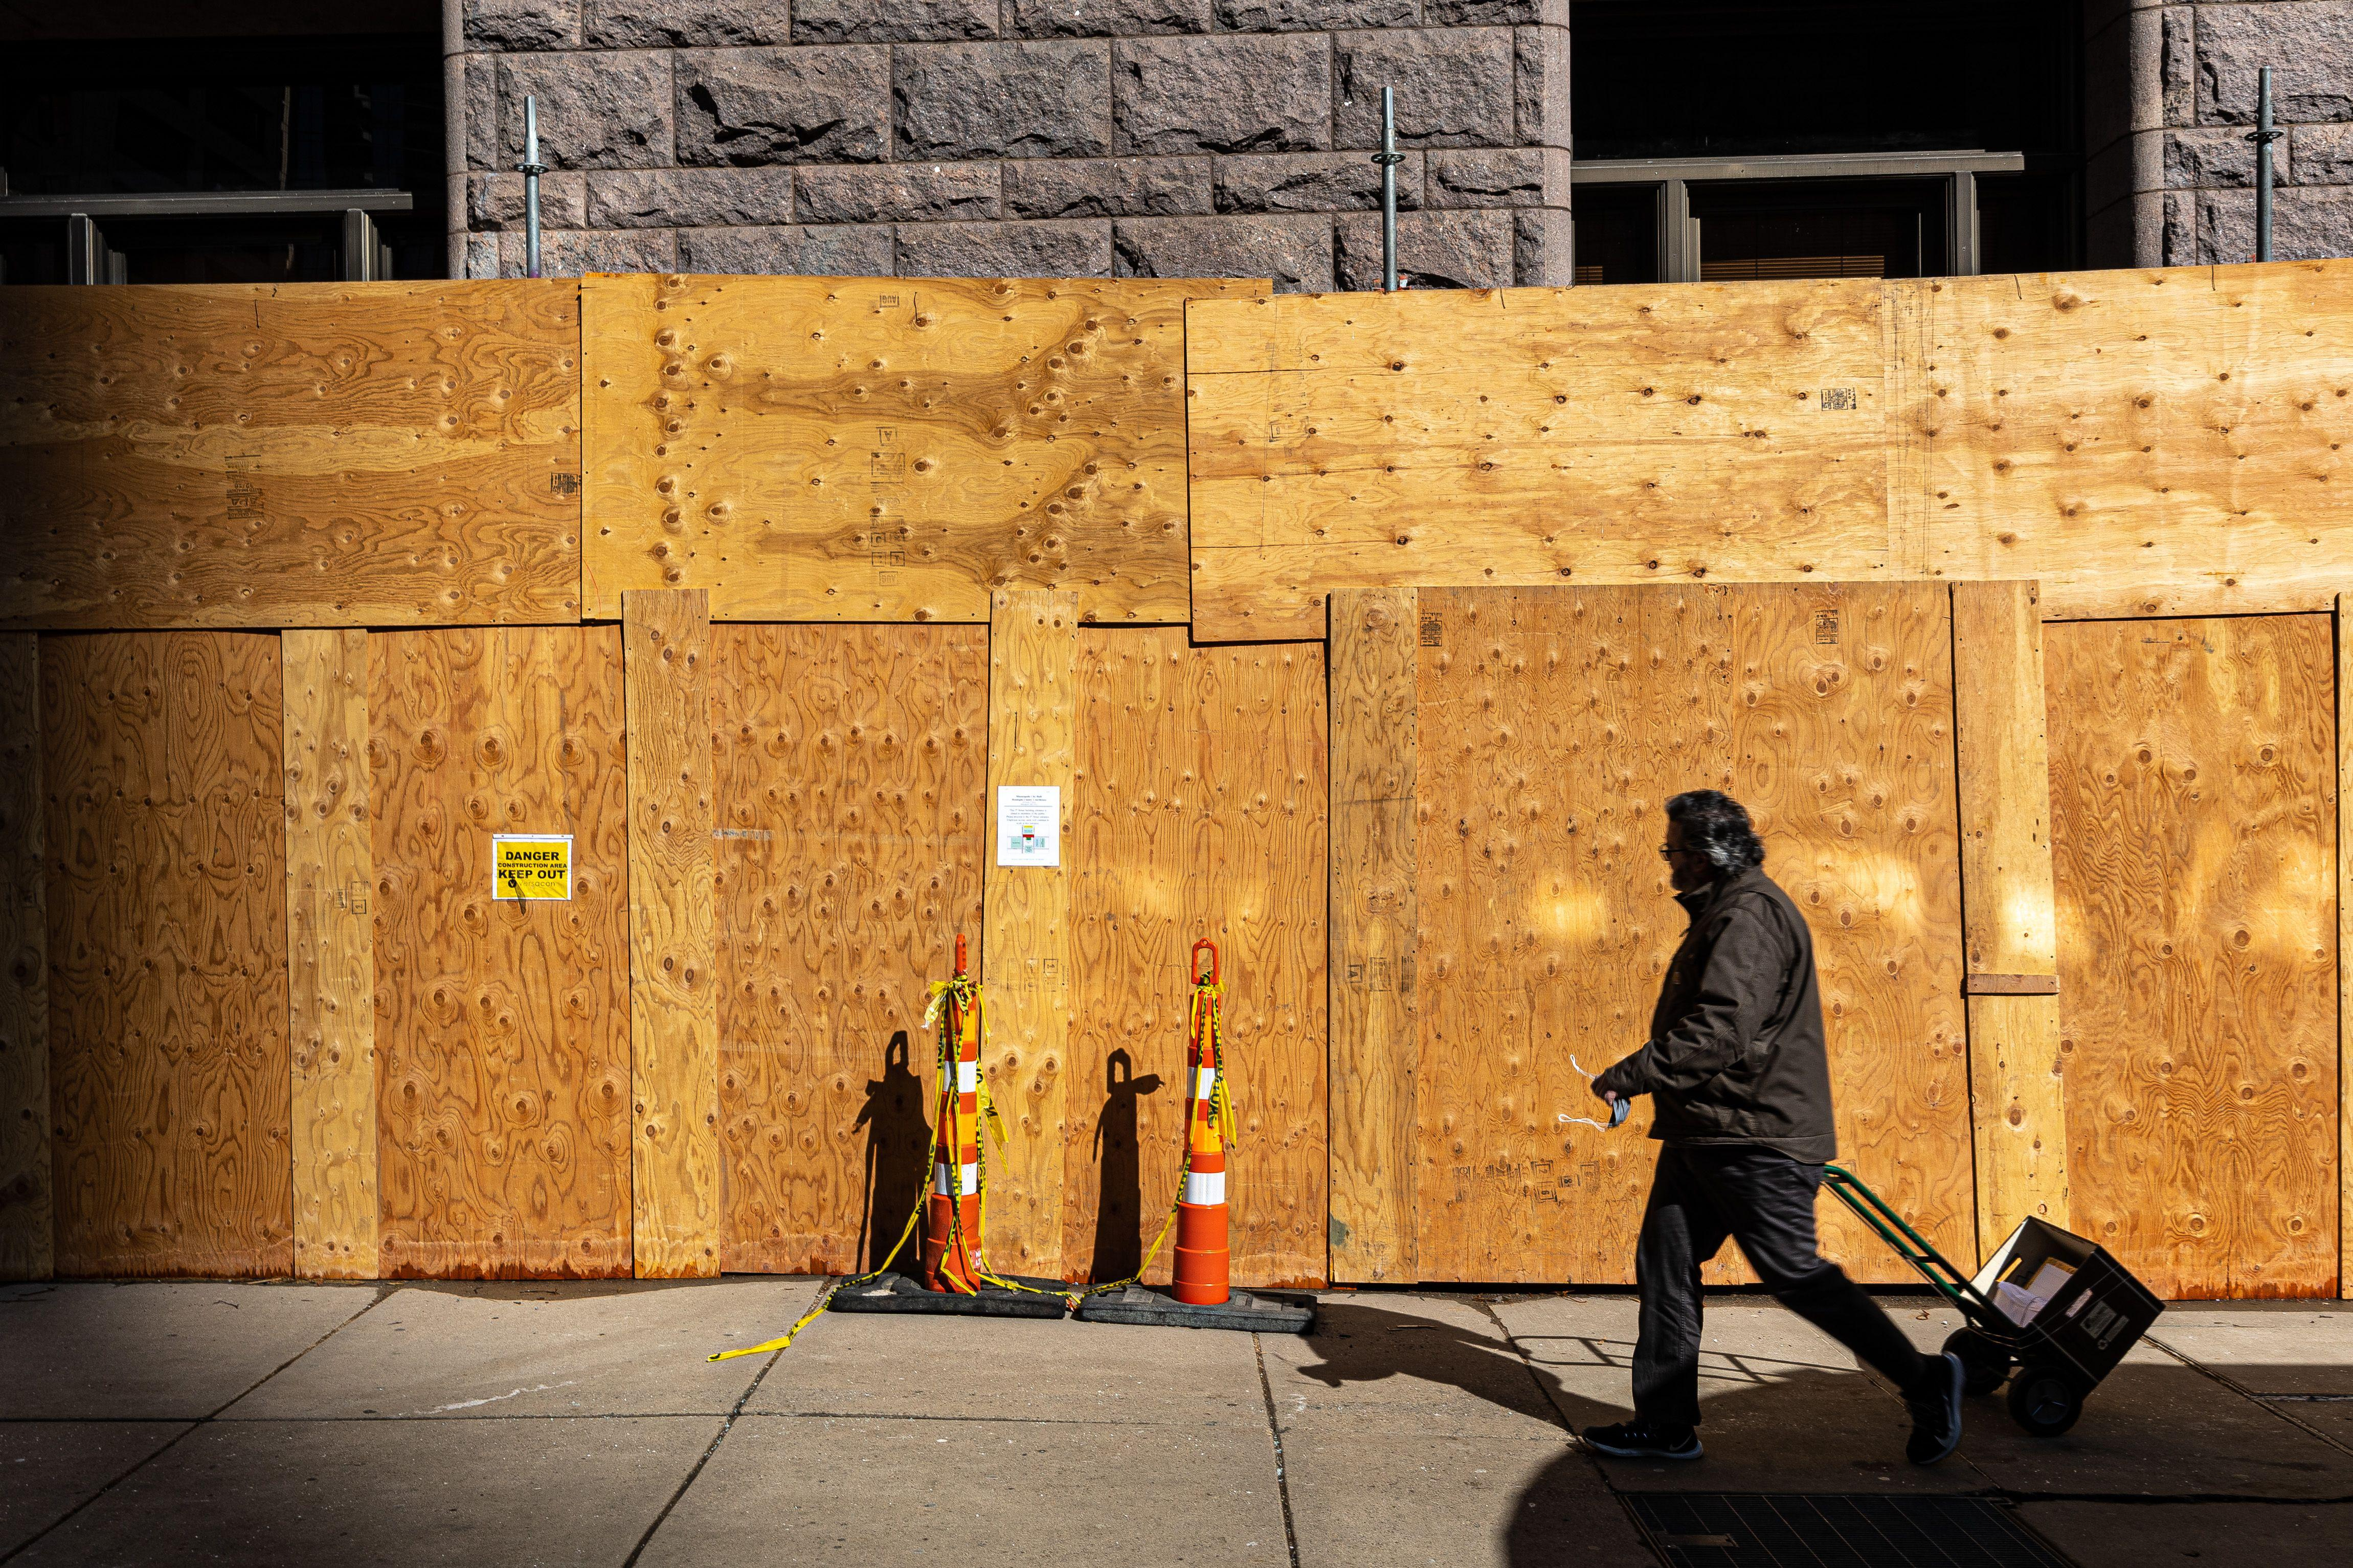 A man walks with court files past boarded windows at the- Hennepin County Government Headquarters in Minneapolis, Minnesota, on March 3, 2021.